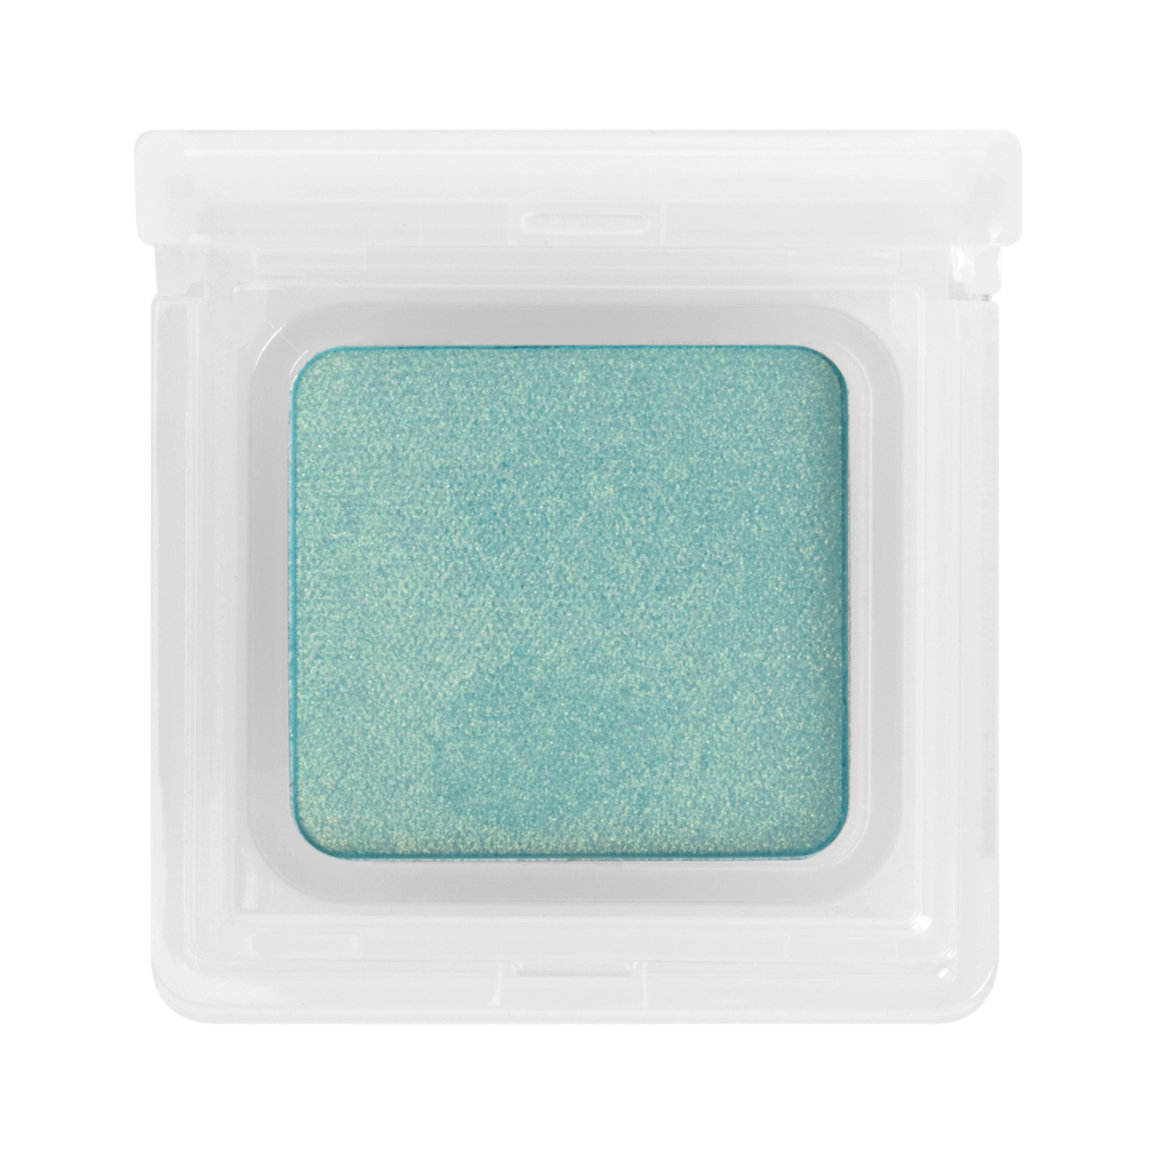 Natasha Denona Mono Eye Shadow Duo-Chrome 08V - Tropic product smear.